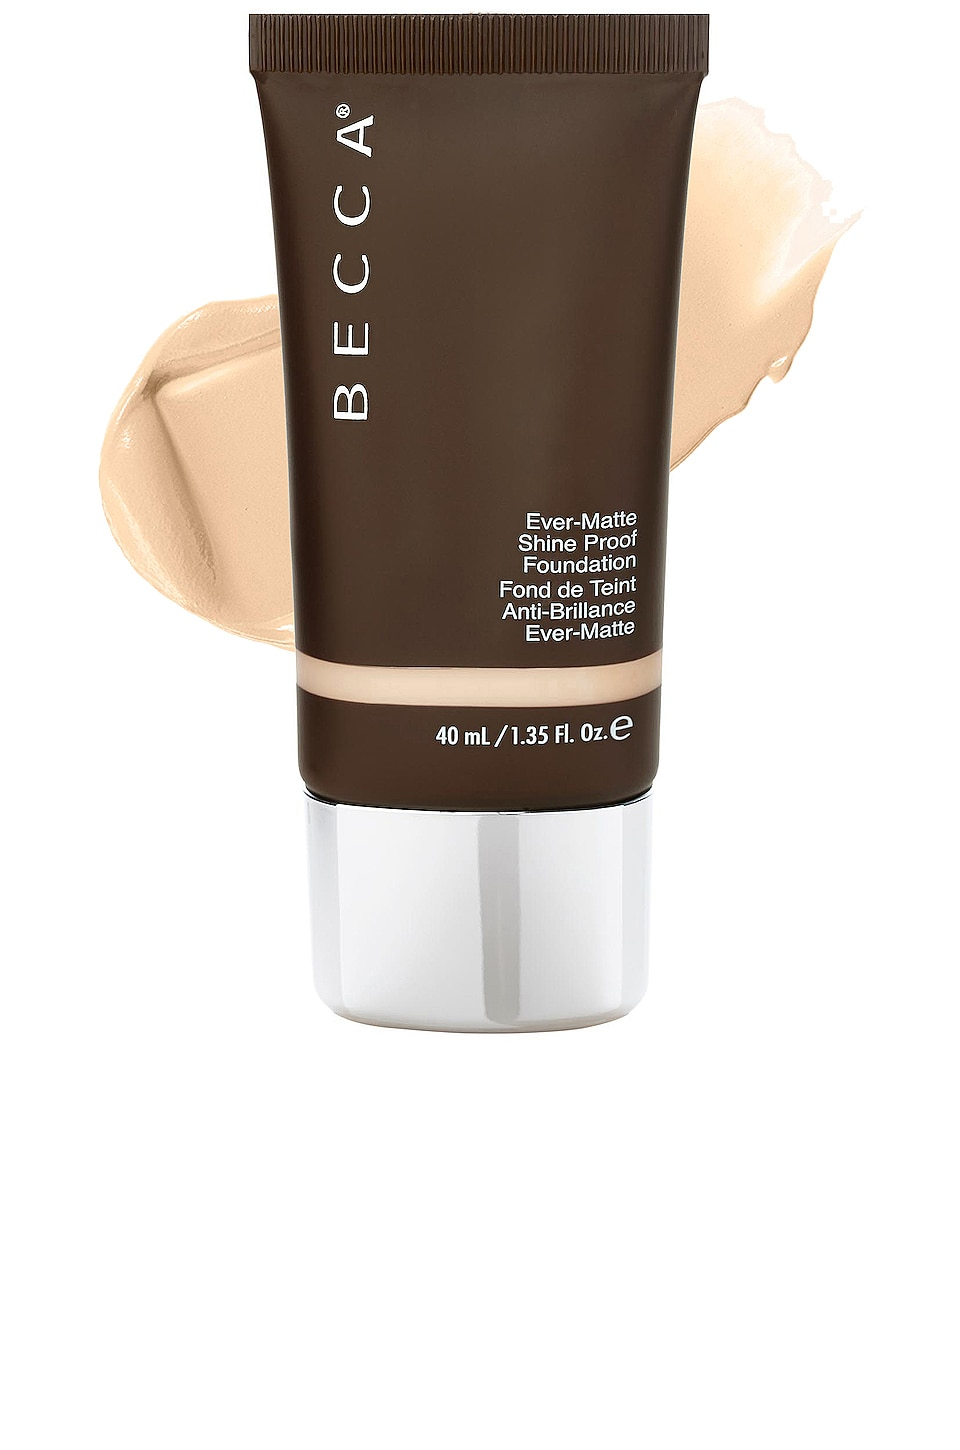 BECCA Ever-Matte Shine Proof Foundation in Sand